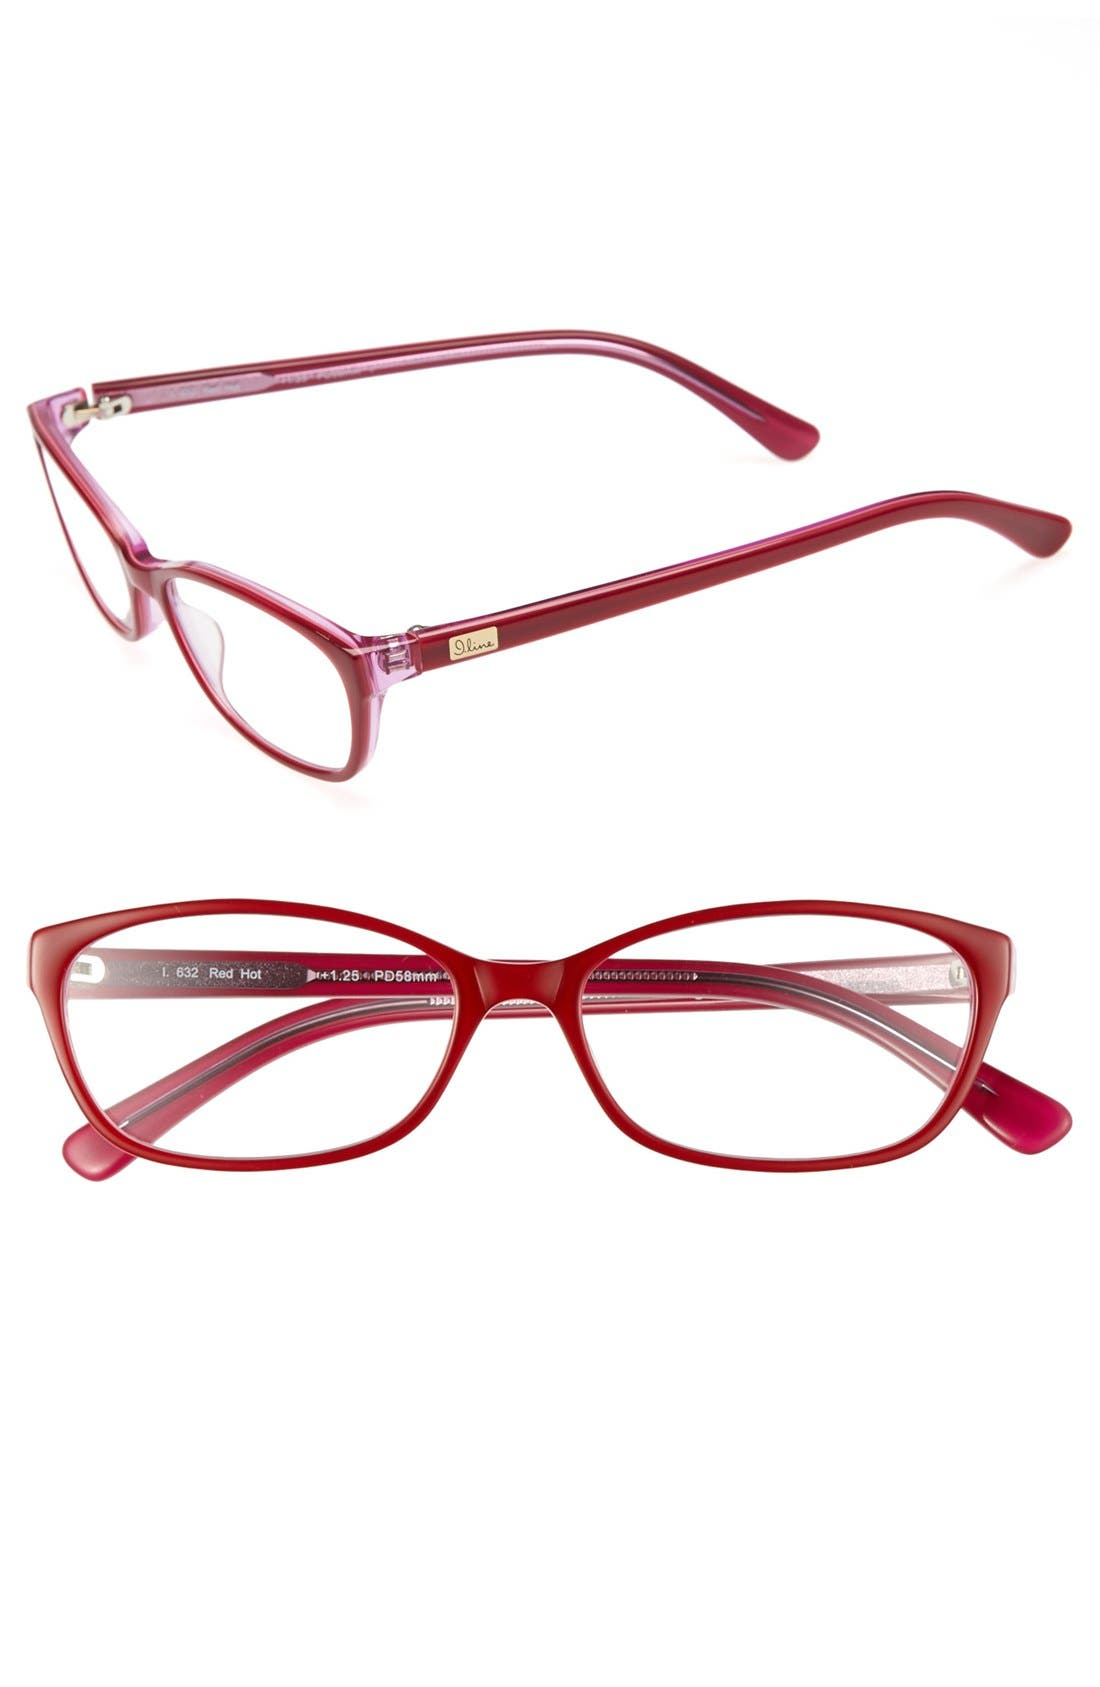 Main Image - I Line Eyewear 'Red Hot' 58mm Reading Glasses